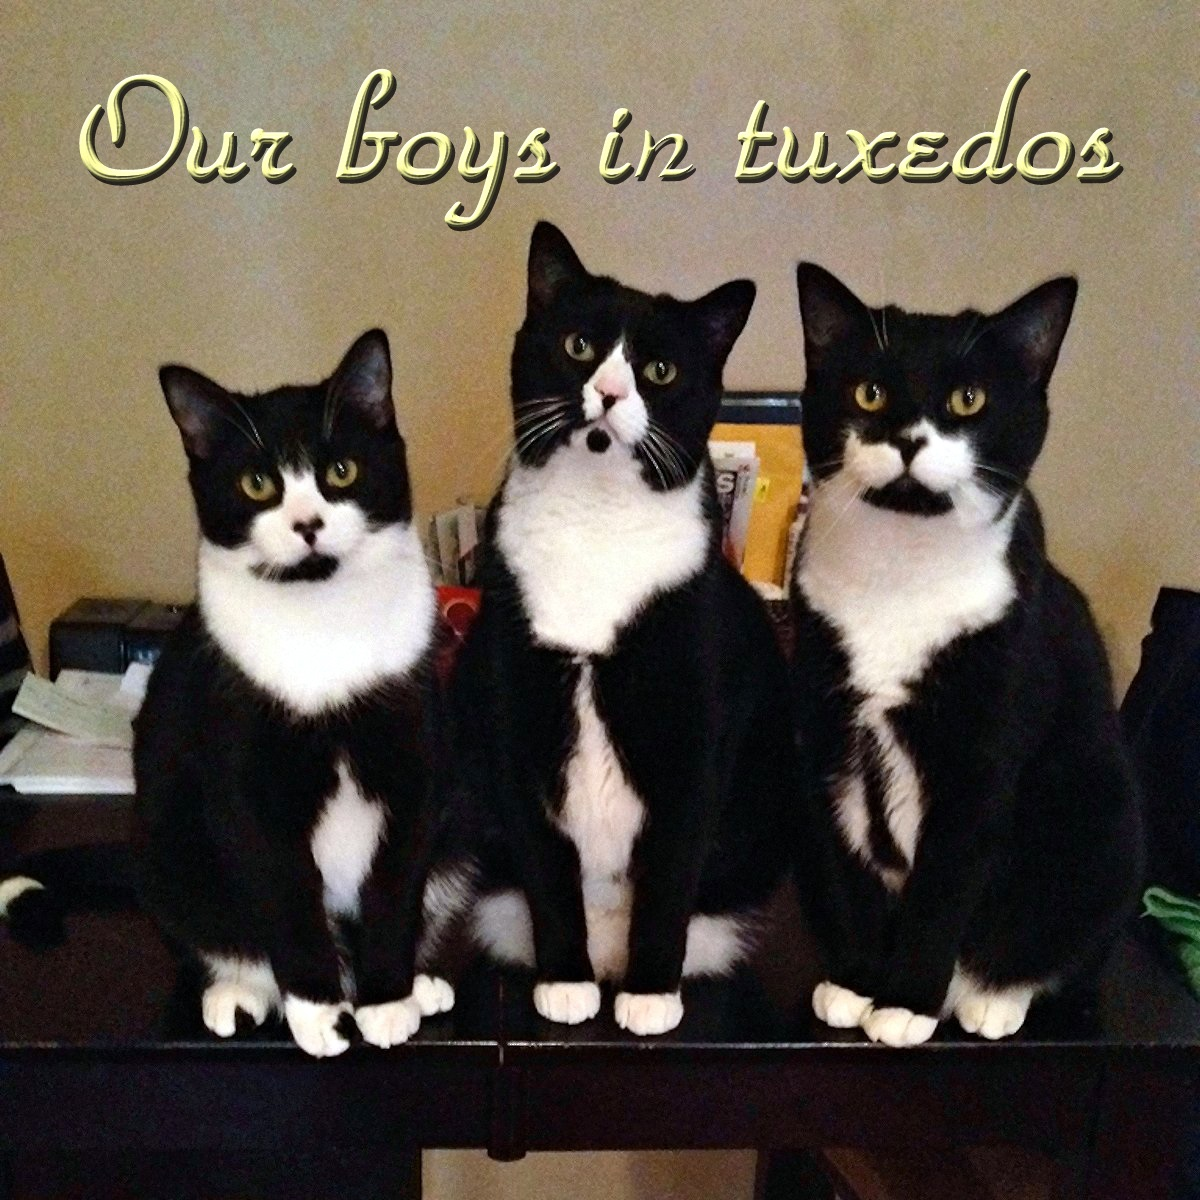 00 cats our boys in tuxedos 121215